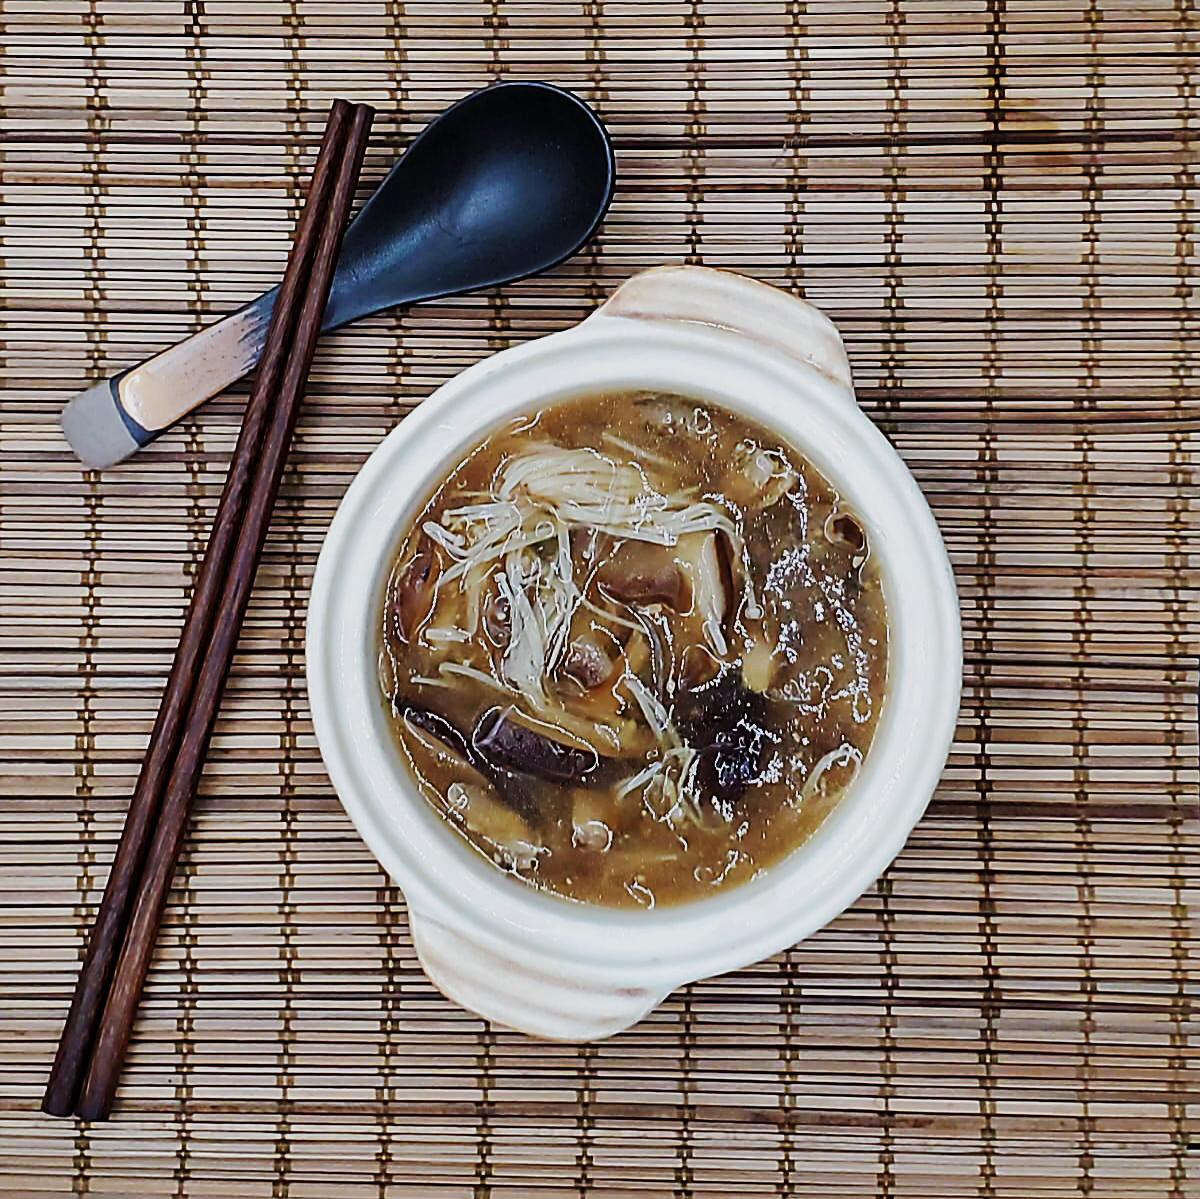 Vegan Faux Sea Cucumber Shark's Fin Soup (New Product)